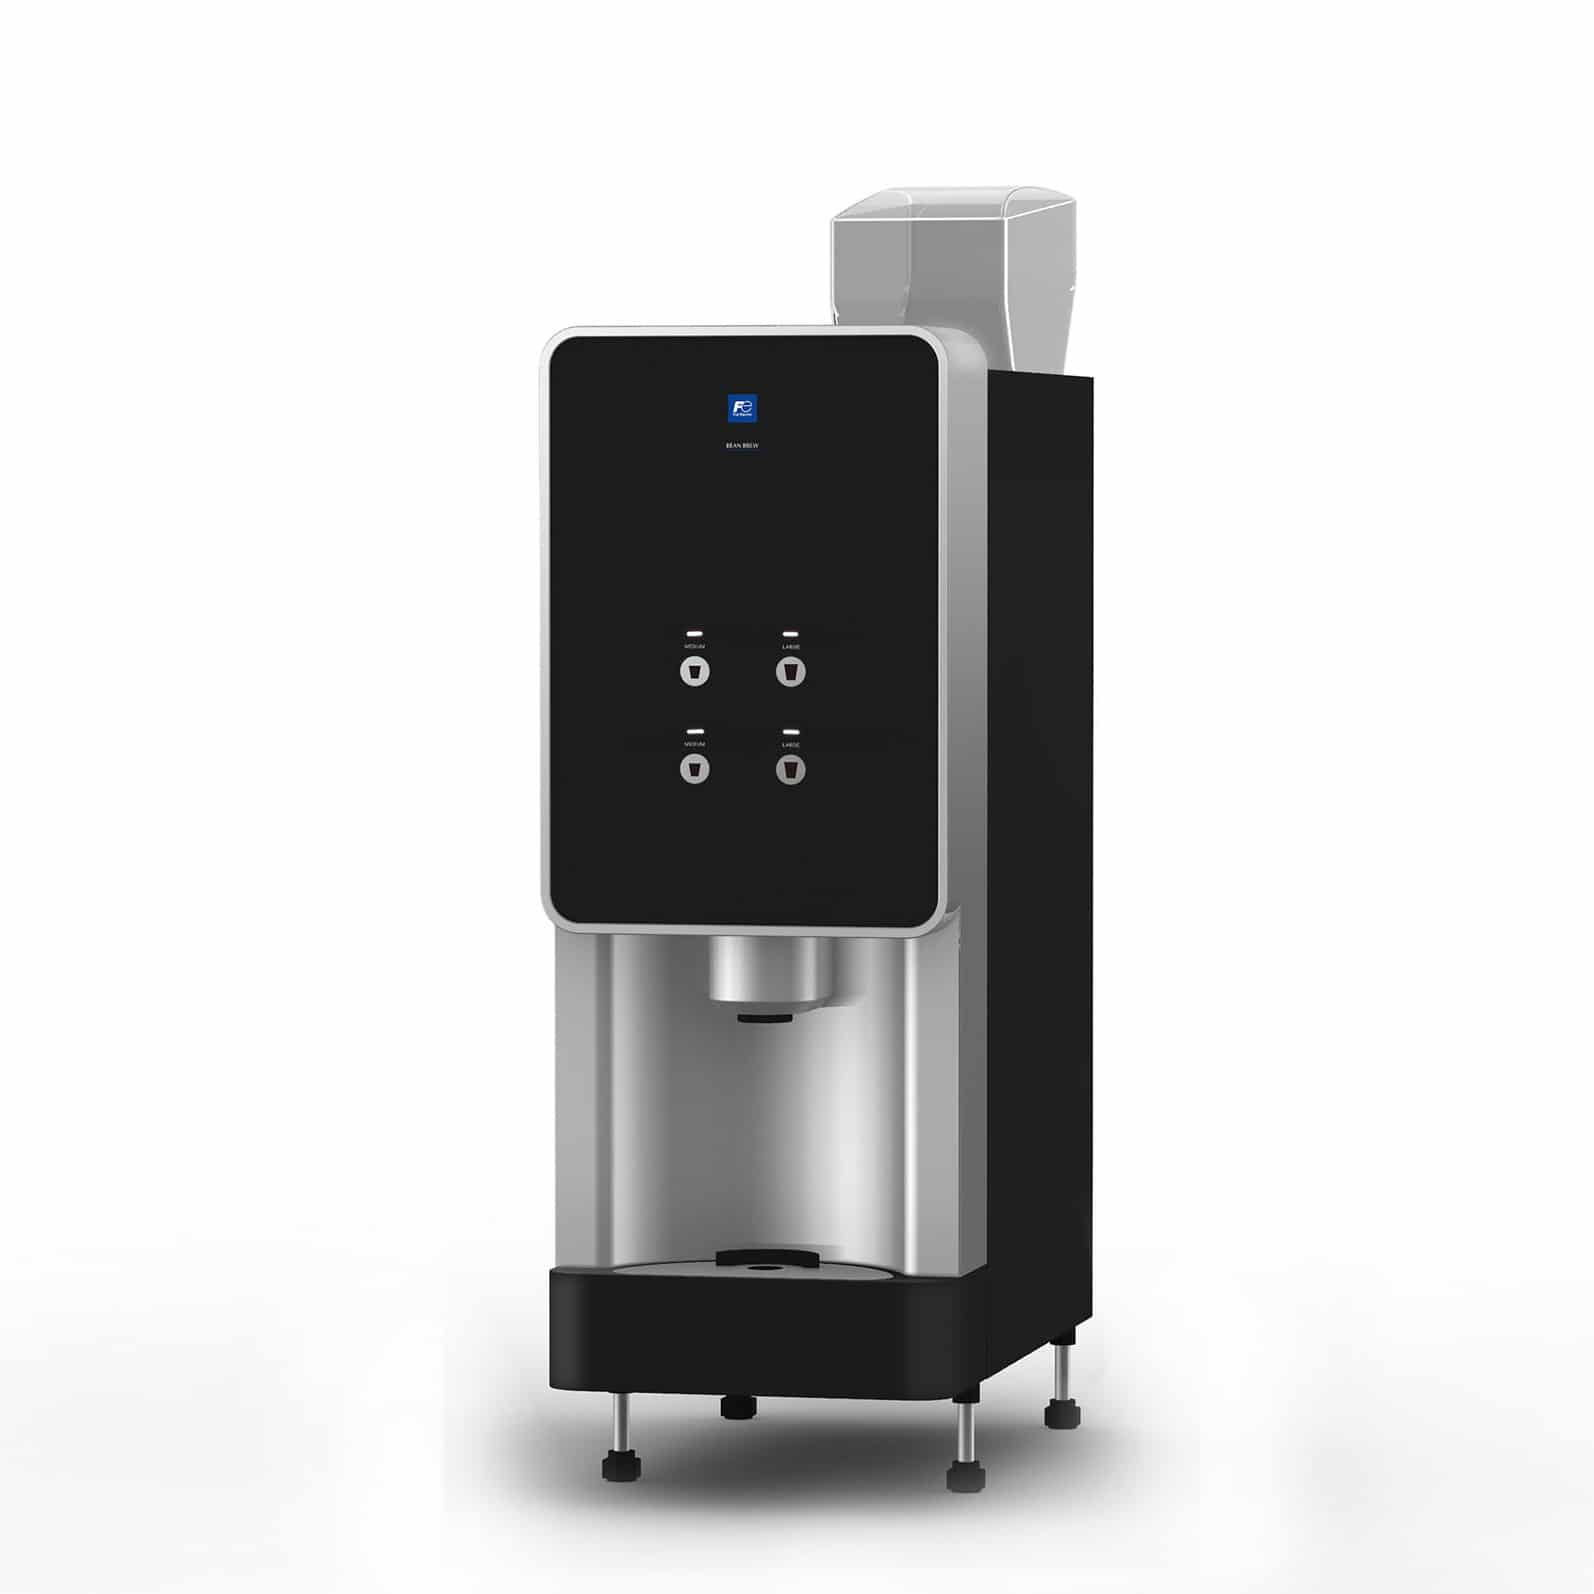 singleserve coffee machine - Commercial Coffee Maker